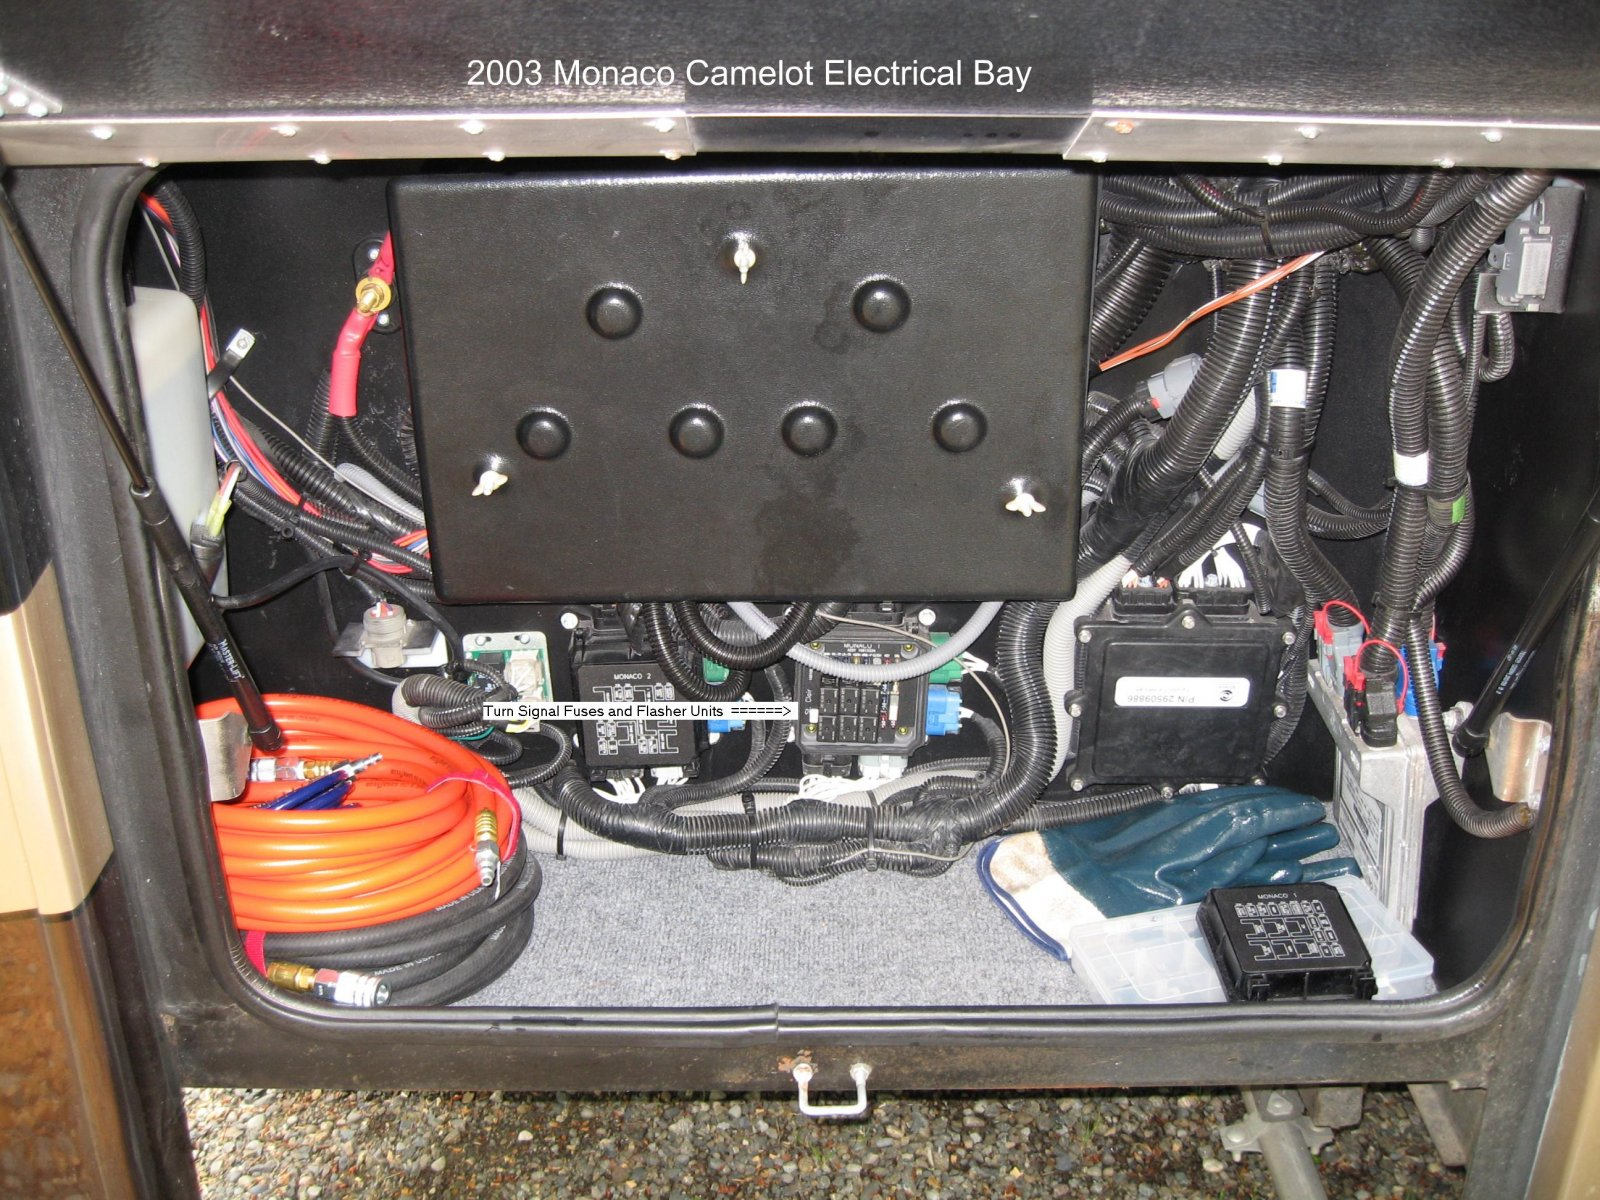 No Turn Signals Or Emergency Flashers Irv2 Forums Monaco Rv Dash Ac Wiring Diagram Click Image For Larger Version Name Img 1253 1 Views 252 Size